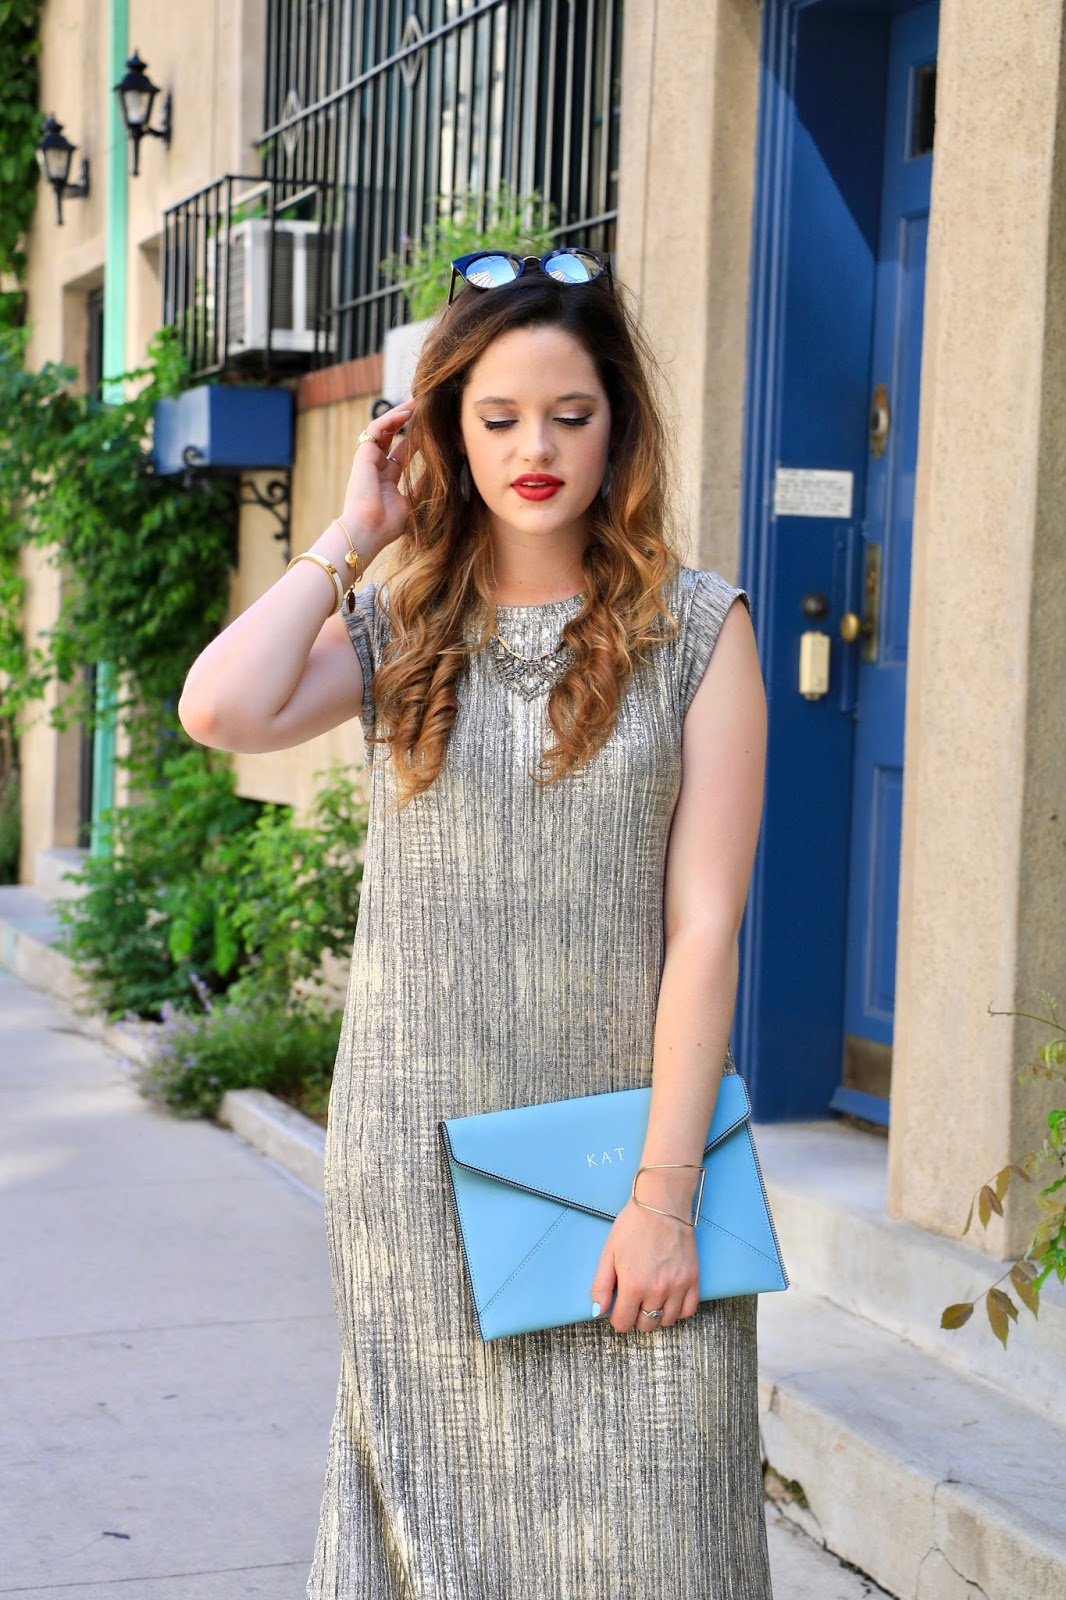 NYC fashion blogger wearing a gold dress styled for summer